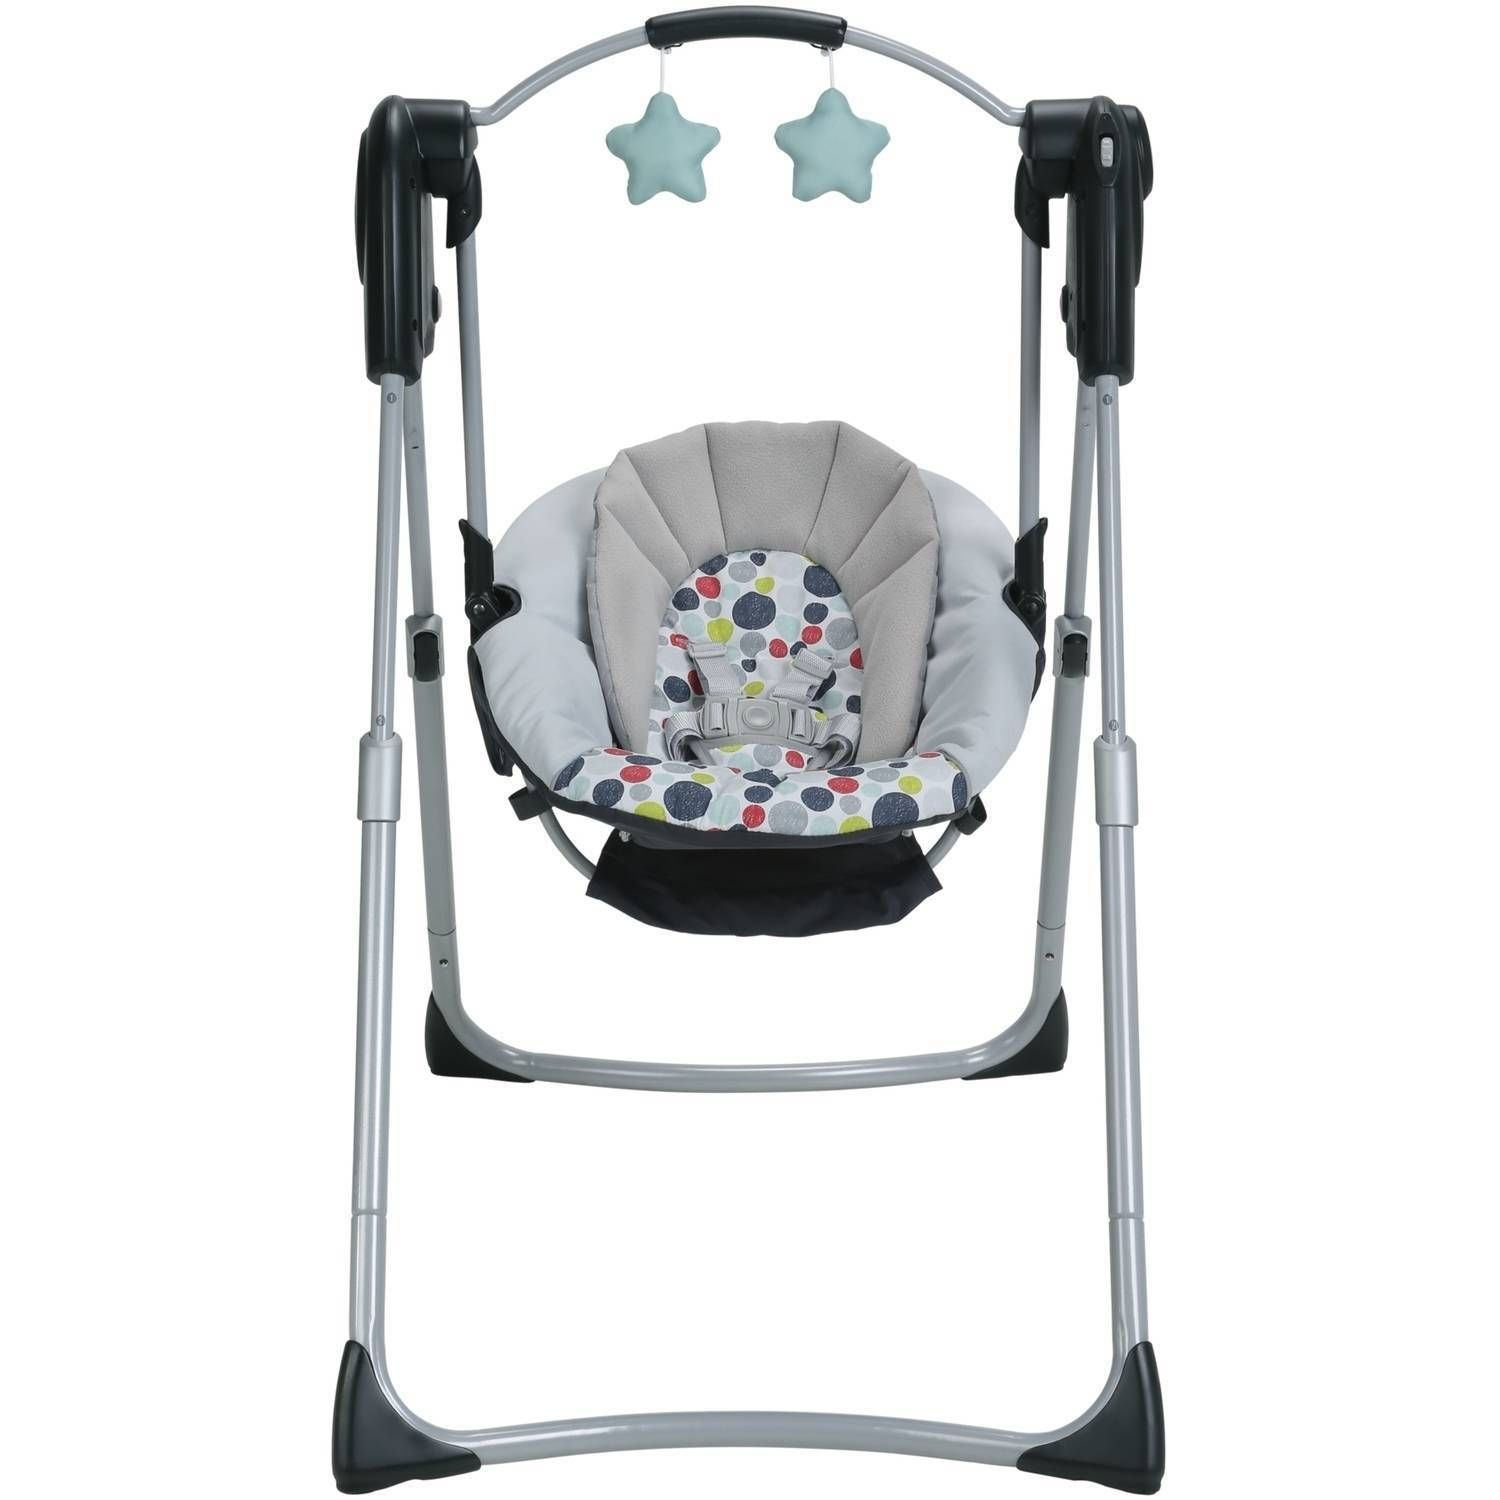 Details About Graco Slim Spaces Compact Baby Swing Etcher Mobile